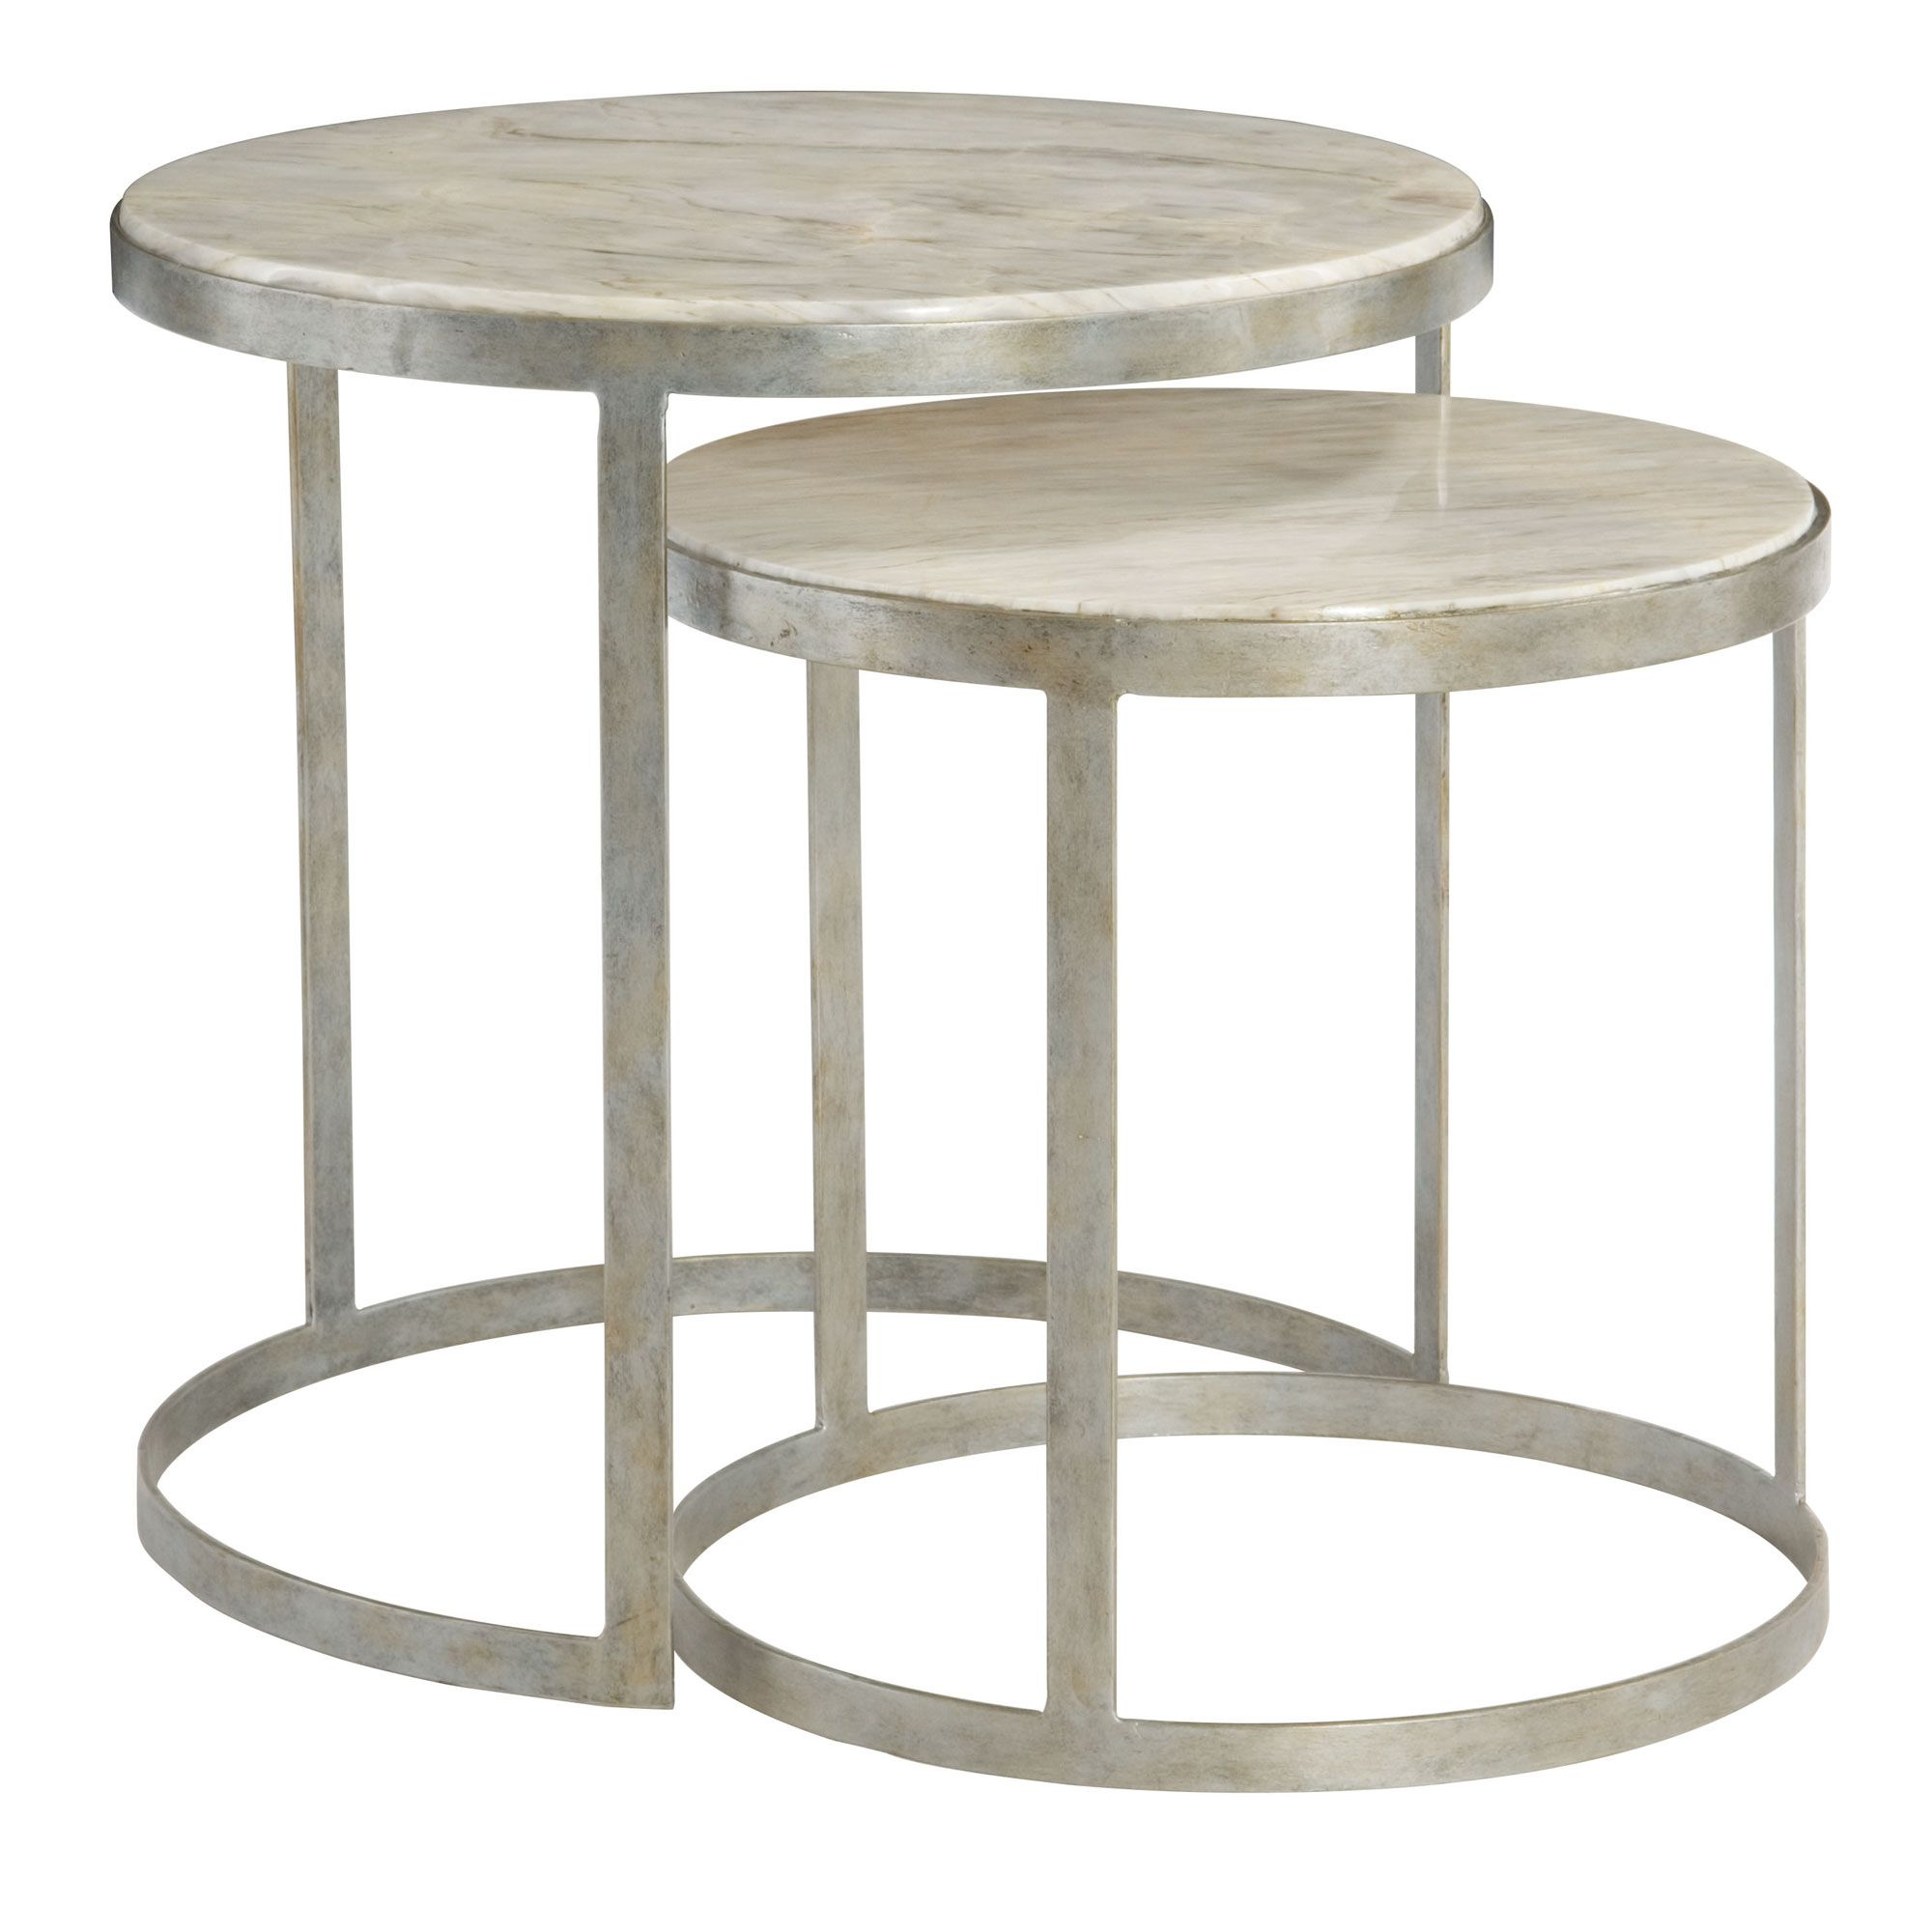 362 031 Tiffin Nesting Tables